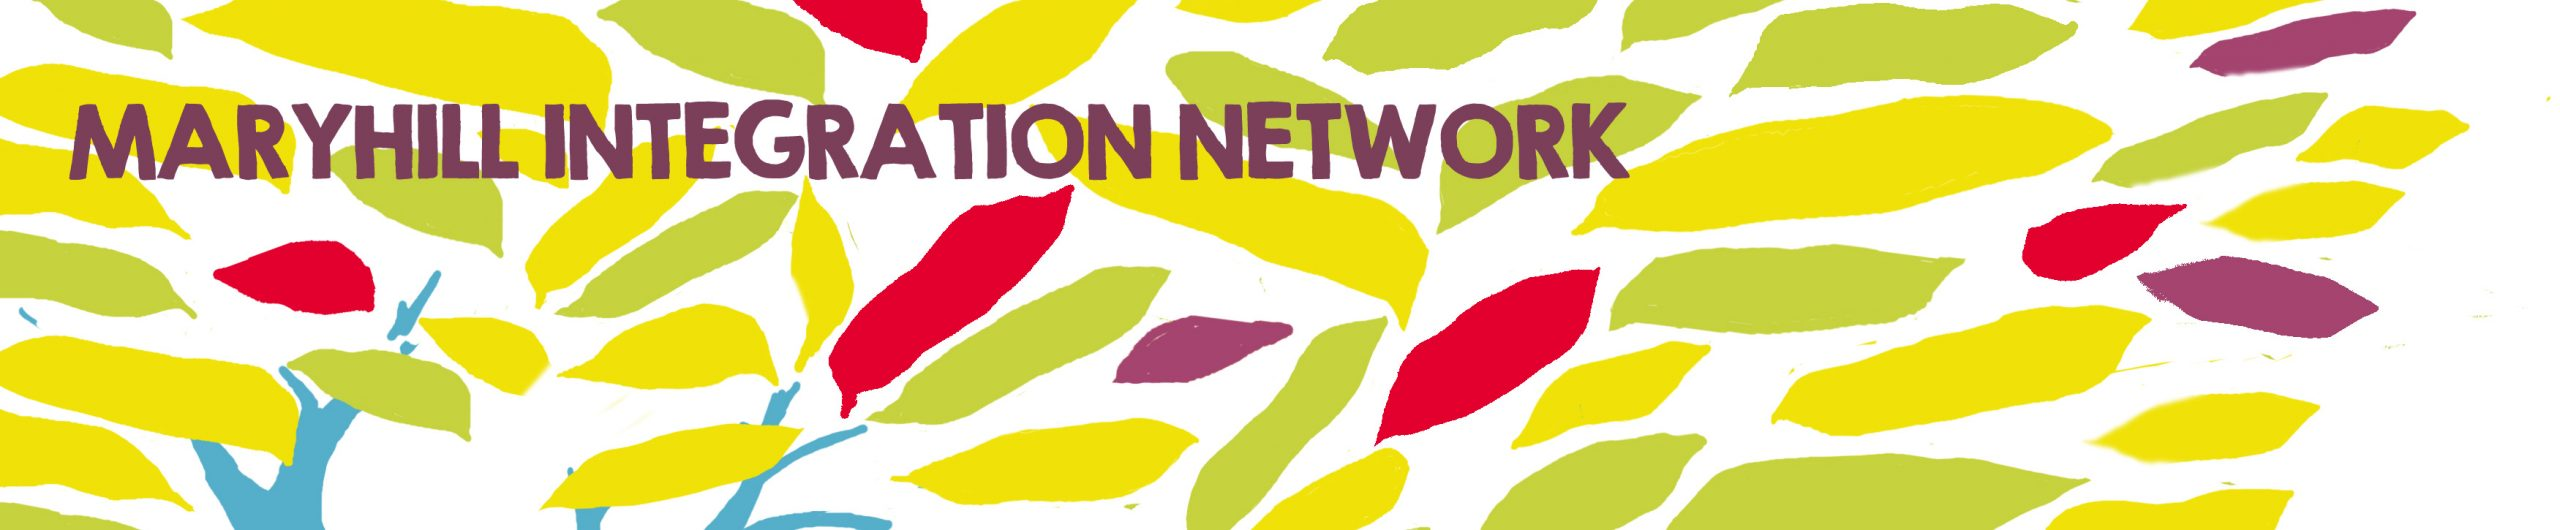 logo graphic for maryhill integration network.